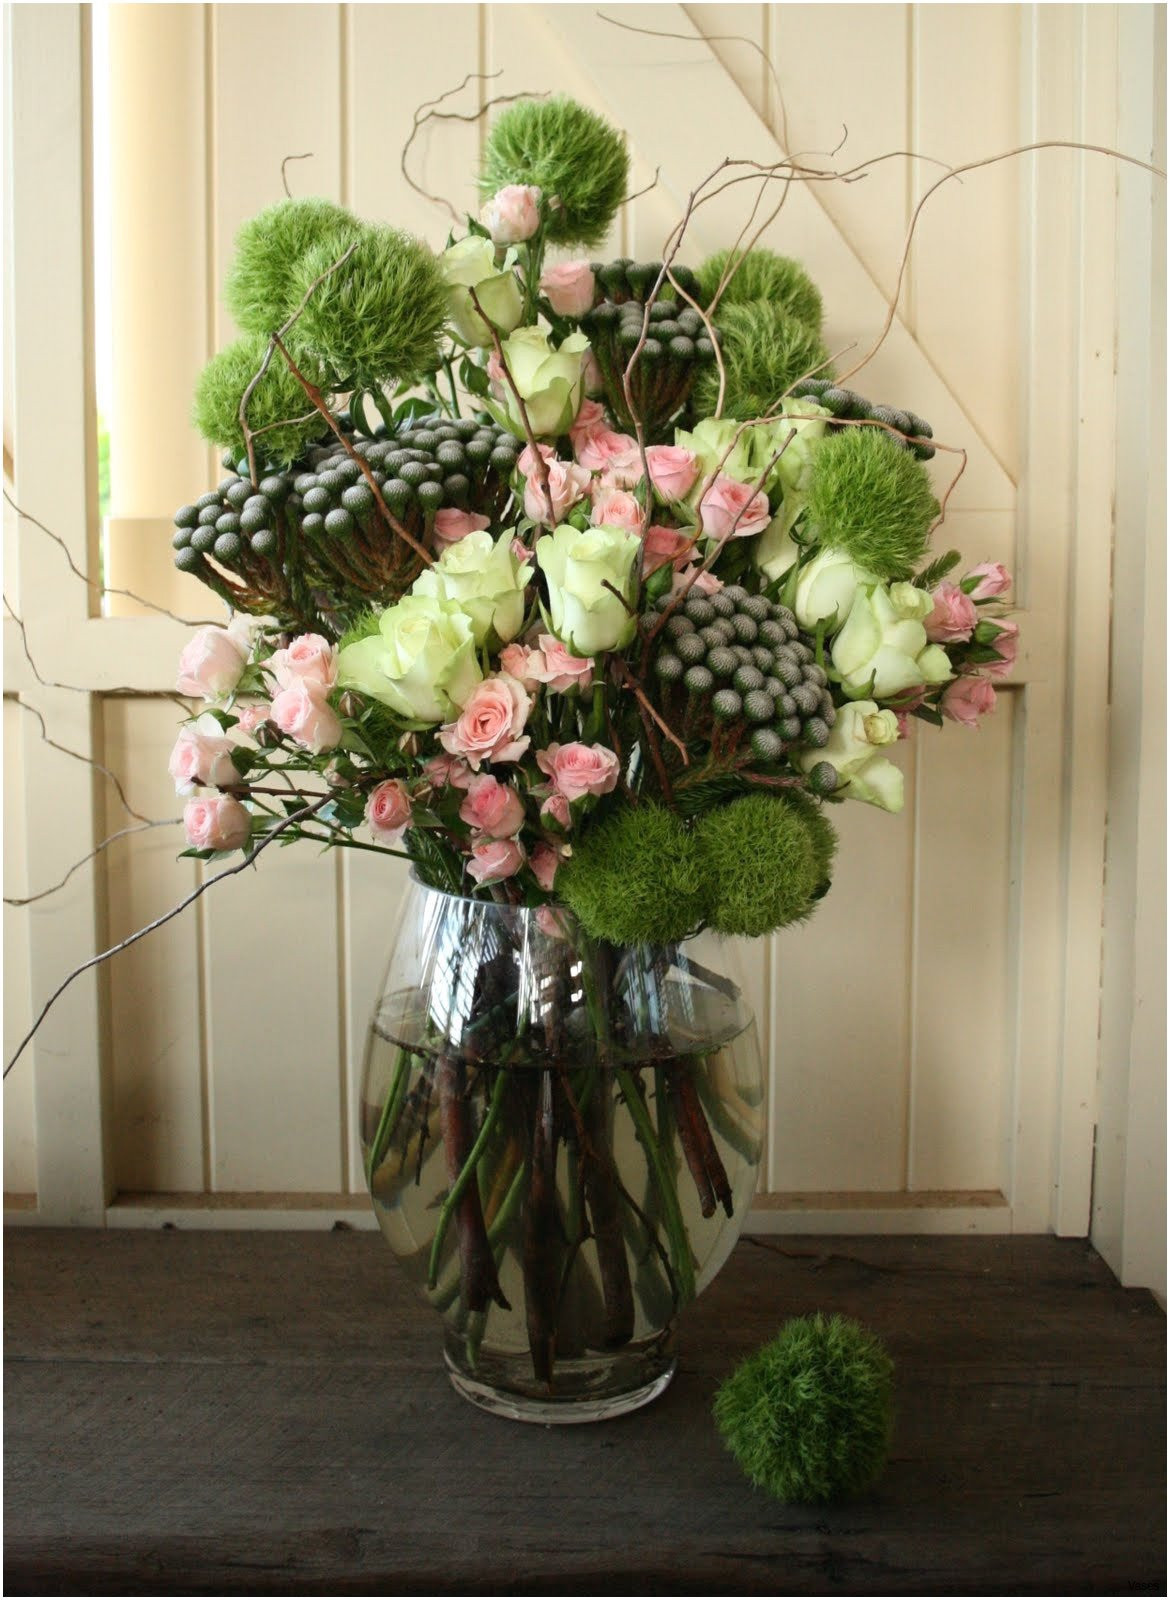 flower bouquet without vase of flowers in a bowl photograph silk flower bouquets imposing h vases intended for flowers in a bowl photograph silk flower bouquets imposing h vases vase flower arrangements i 0d